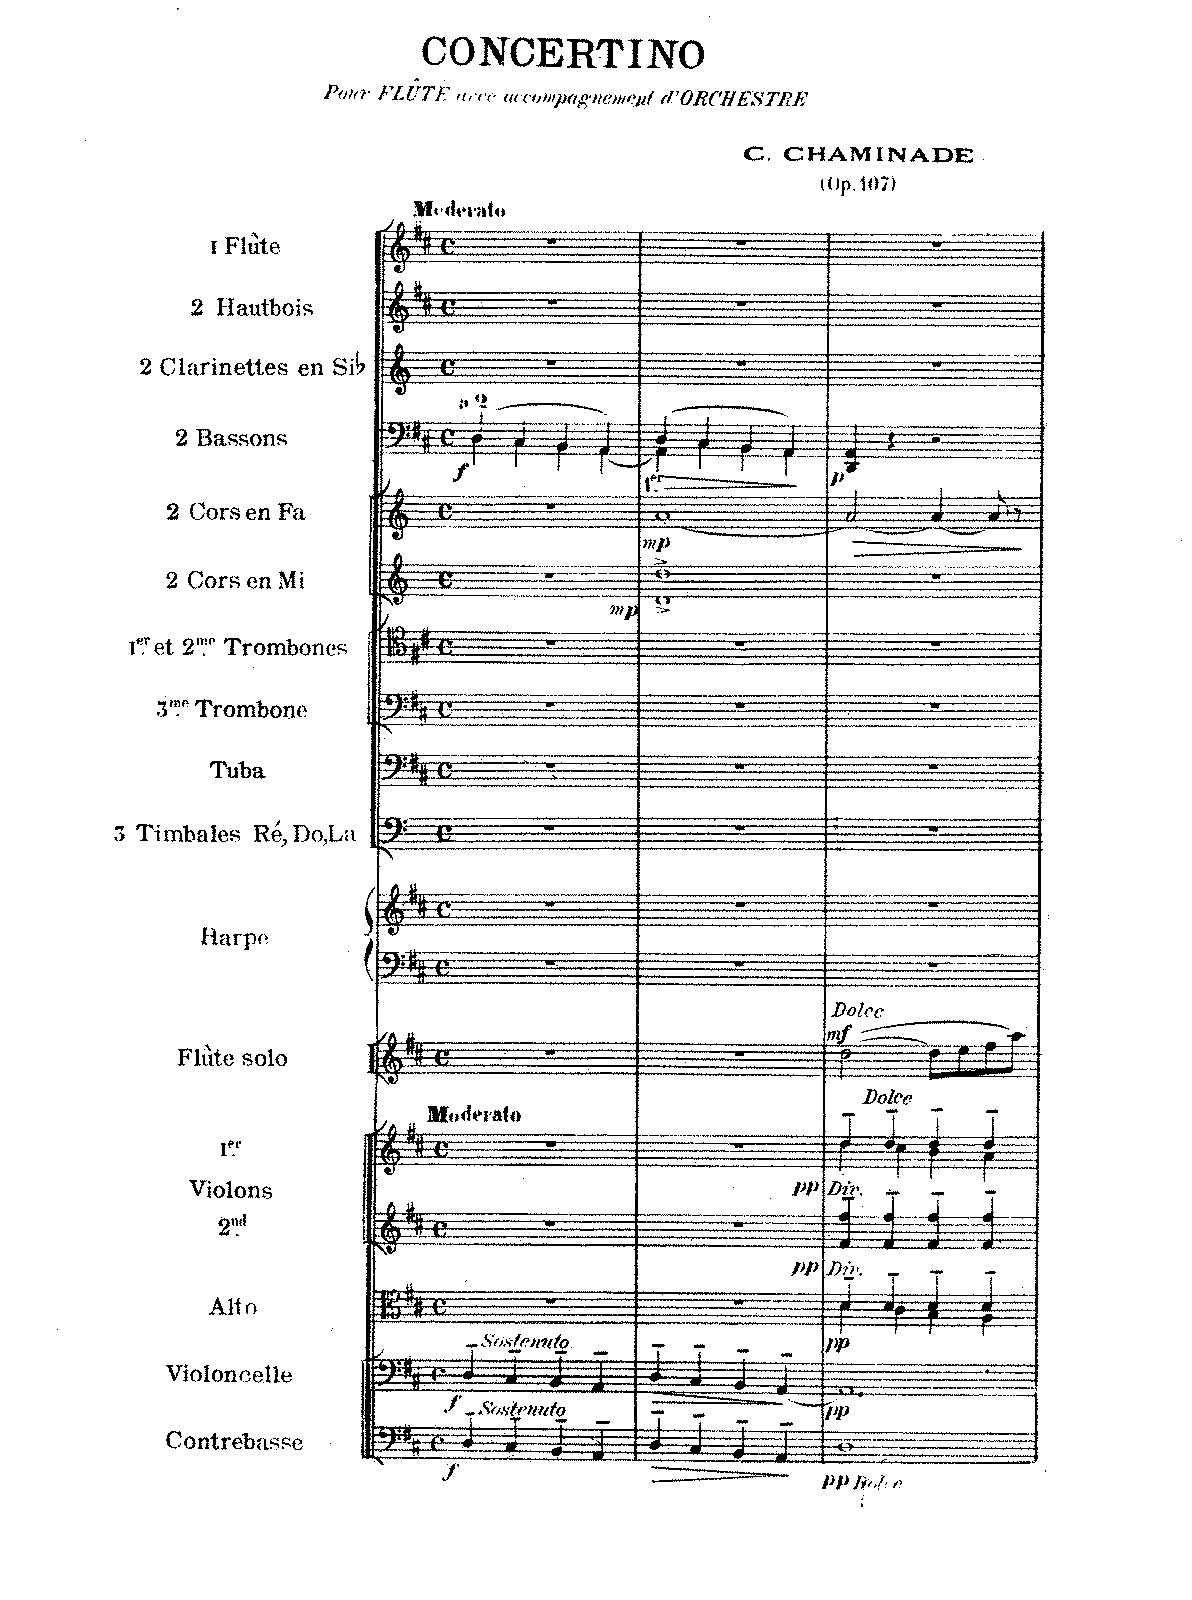 PMLP17533-Chaminade - Concertino for flute and orchestra, Op. 107 (orch. score).pdf